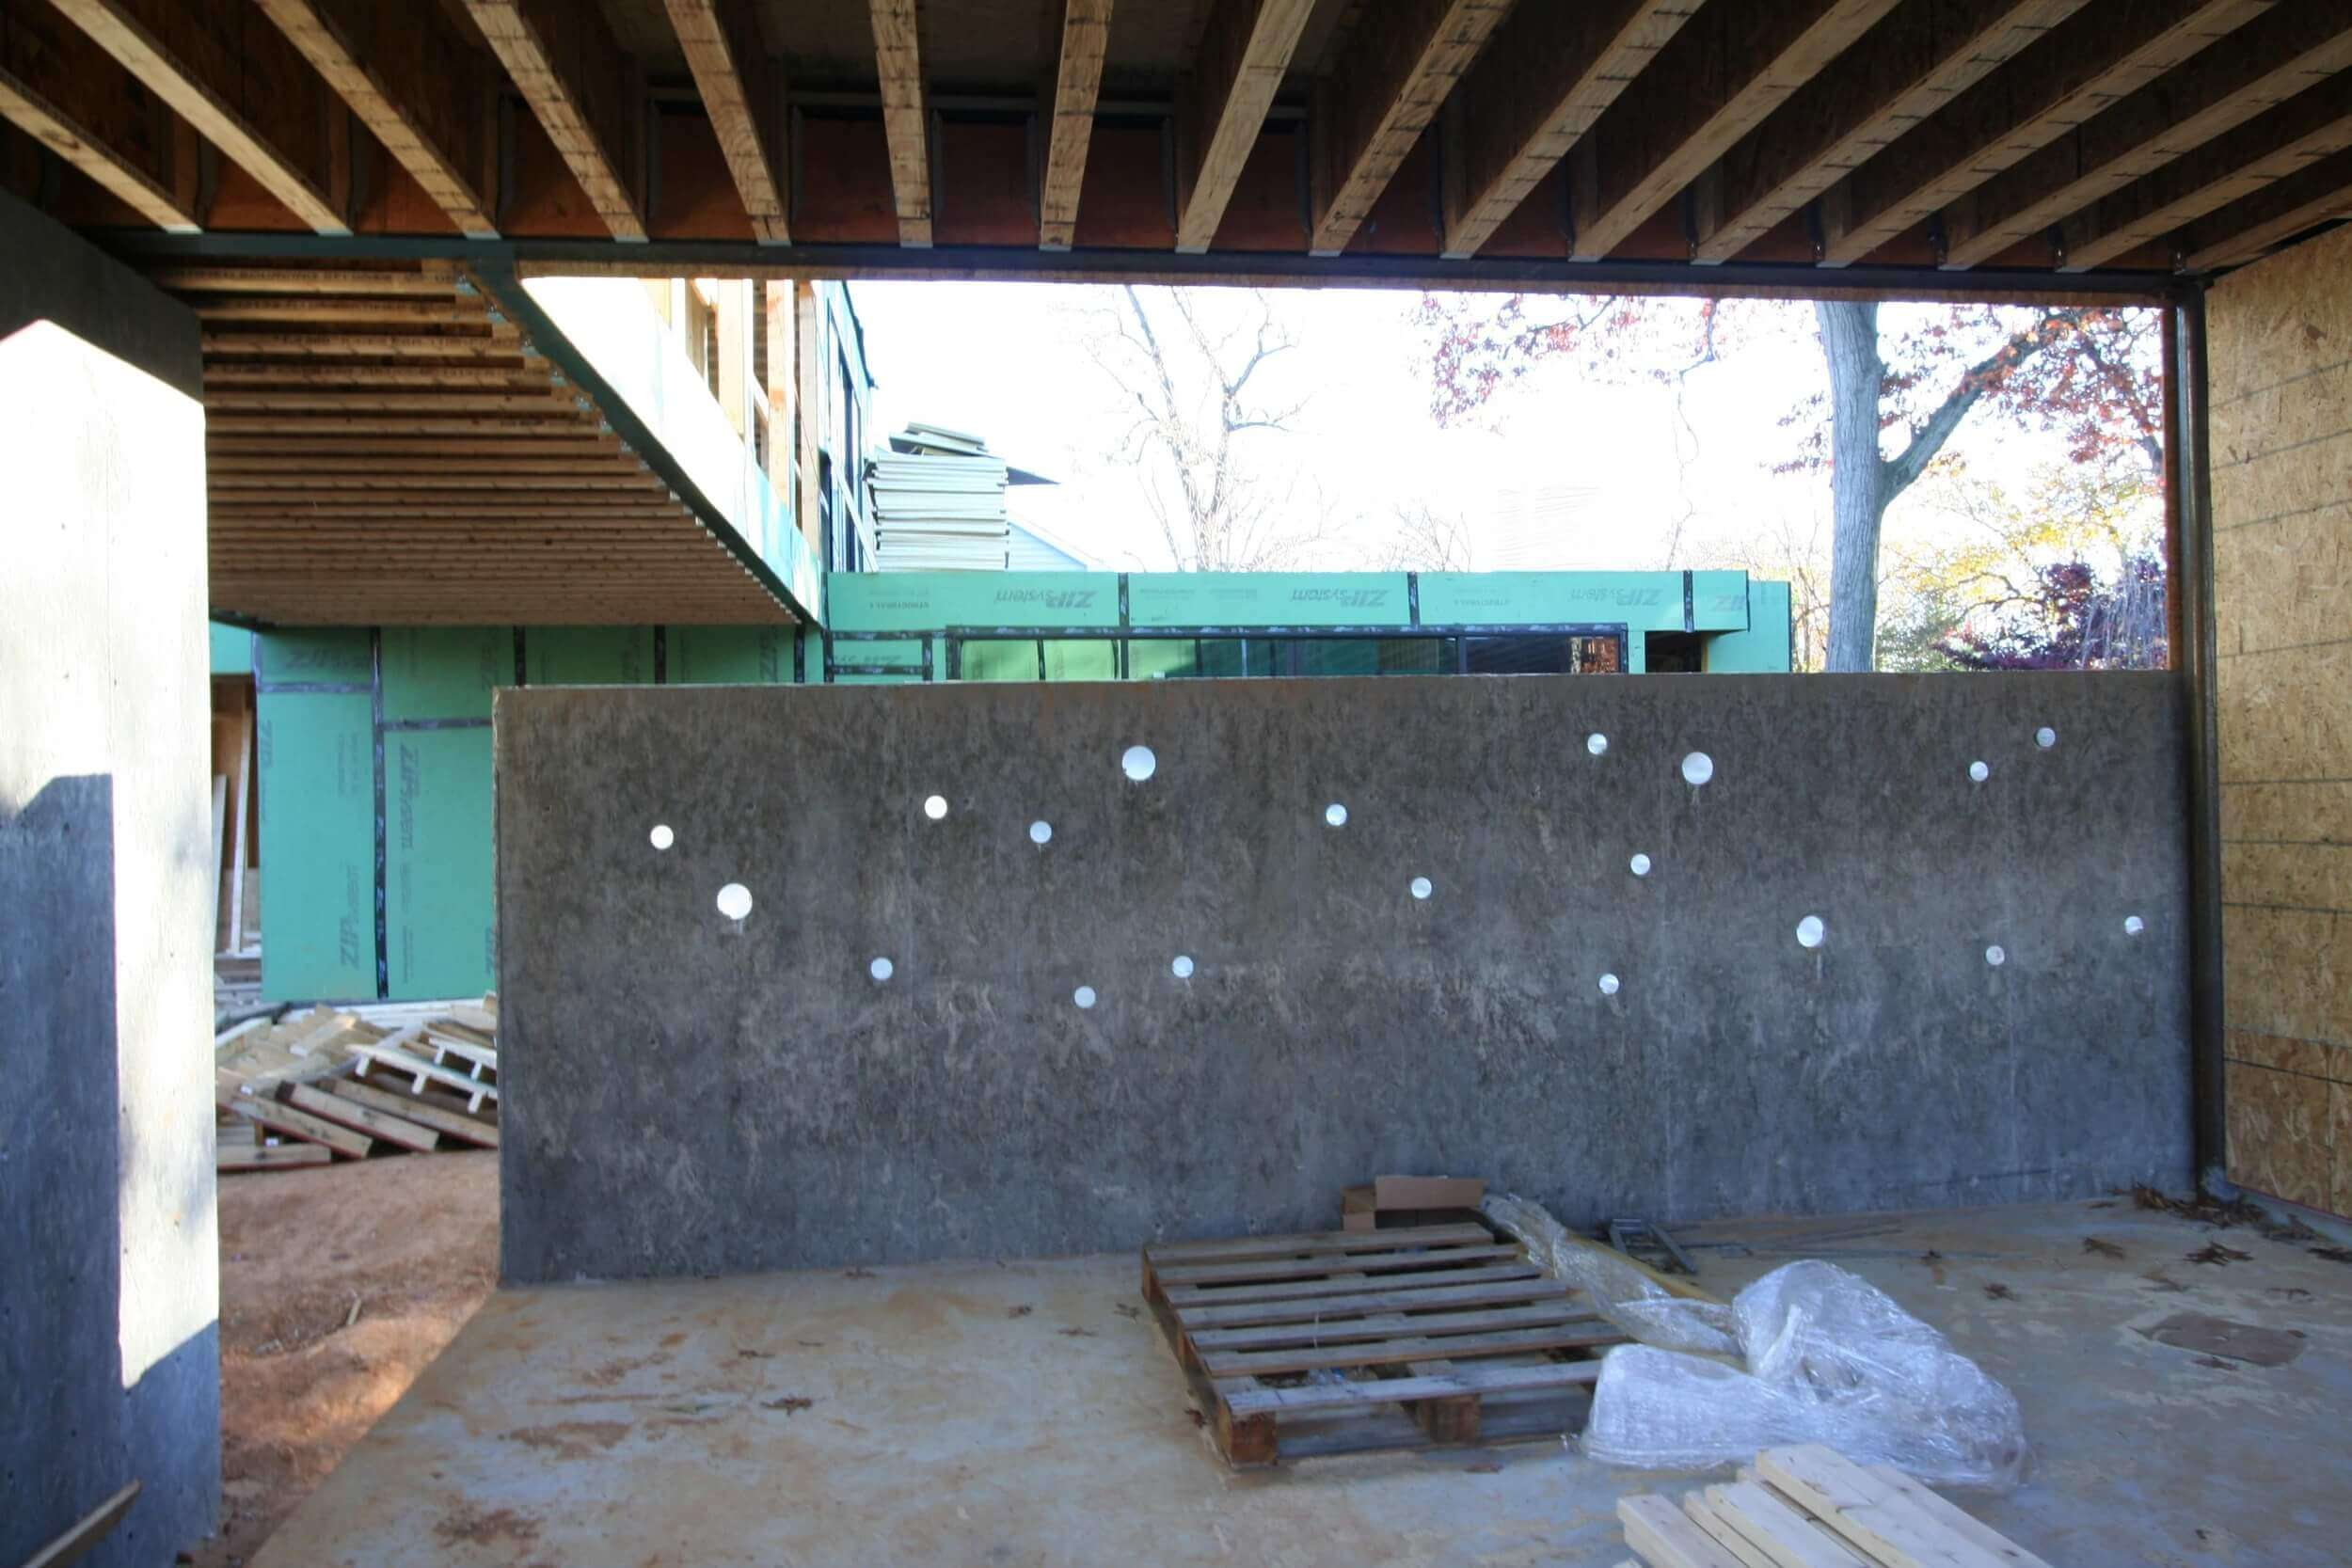 The retaining wall with the acrylic tube detail.